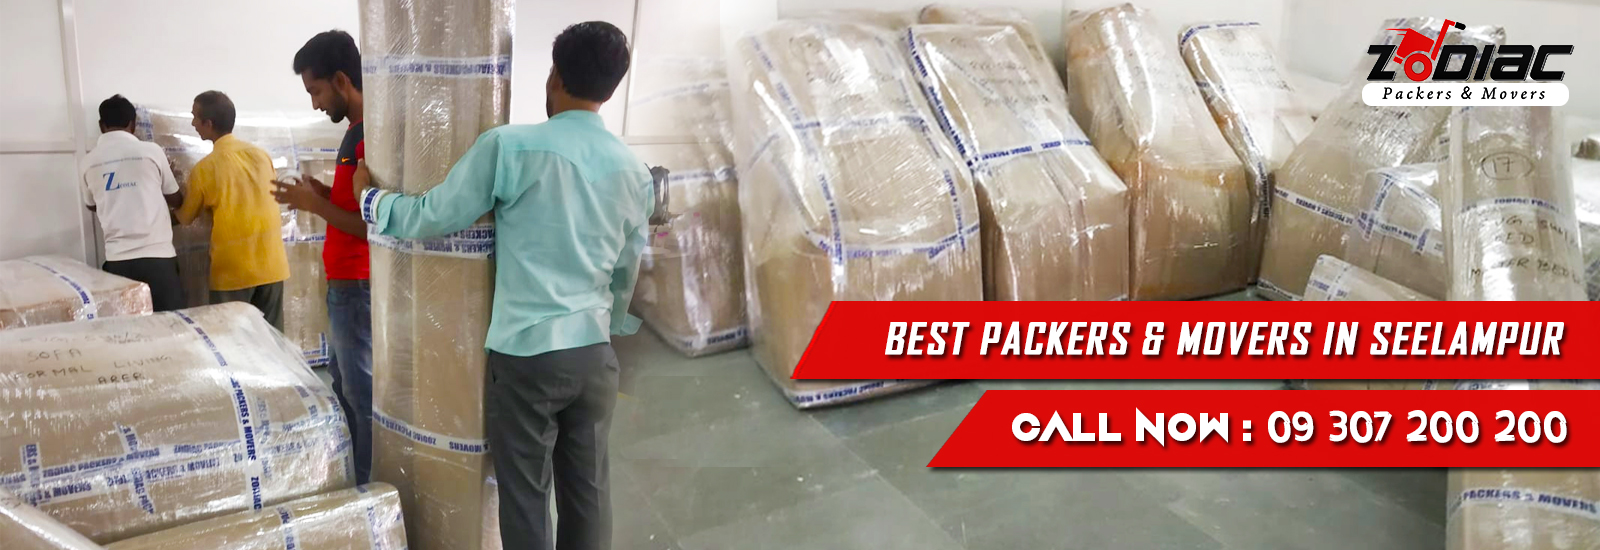 Packers and Movers in Seelampur